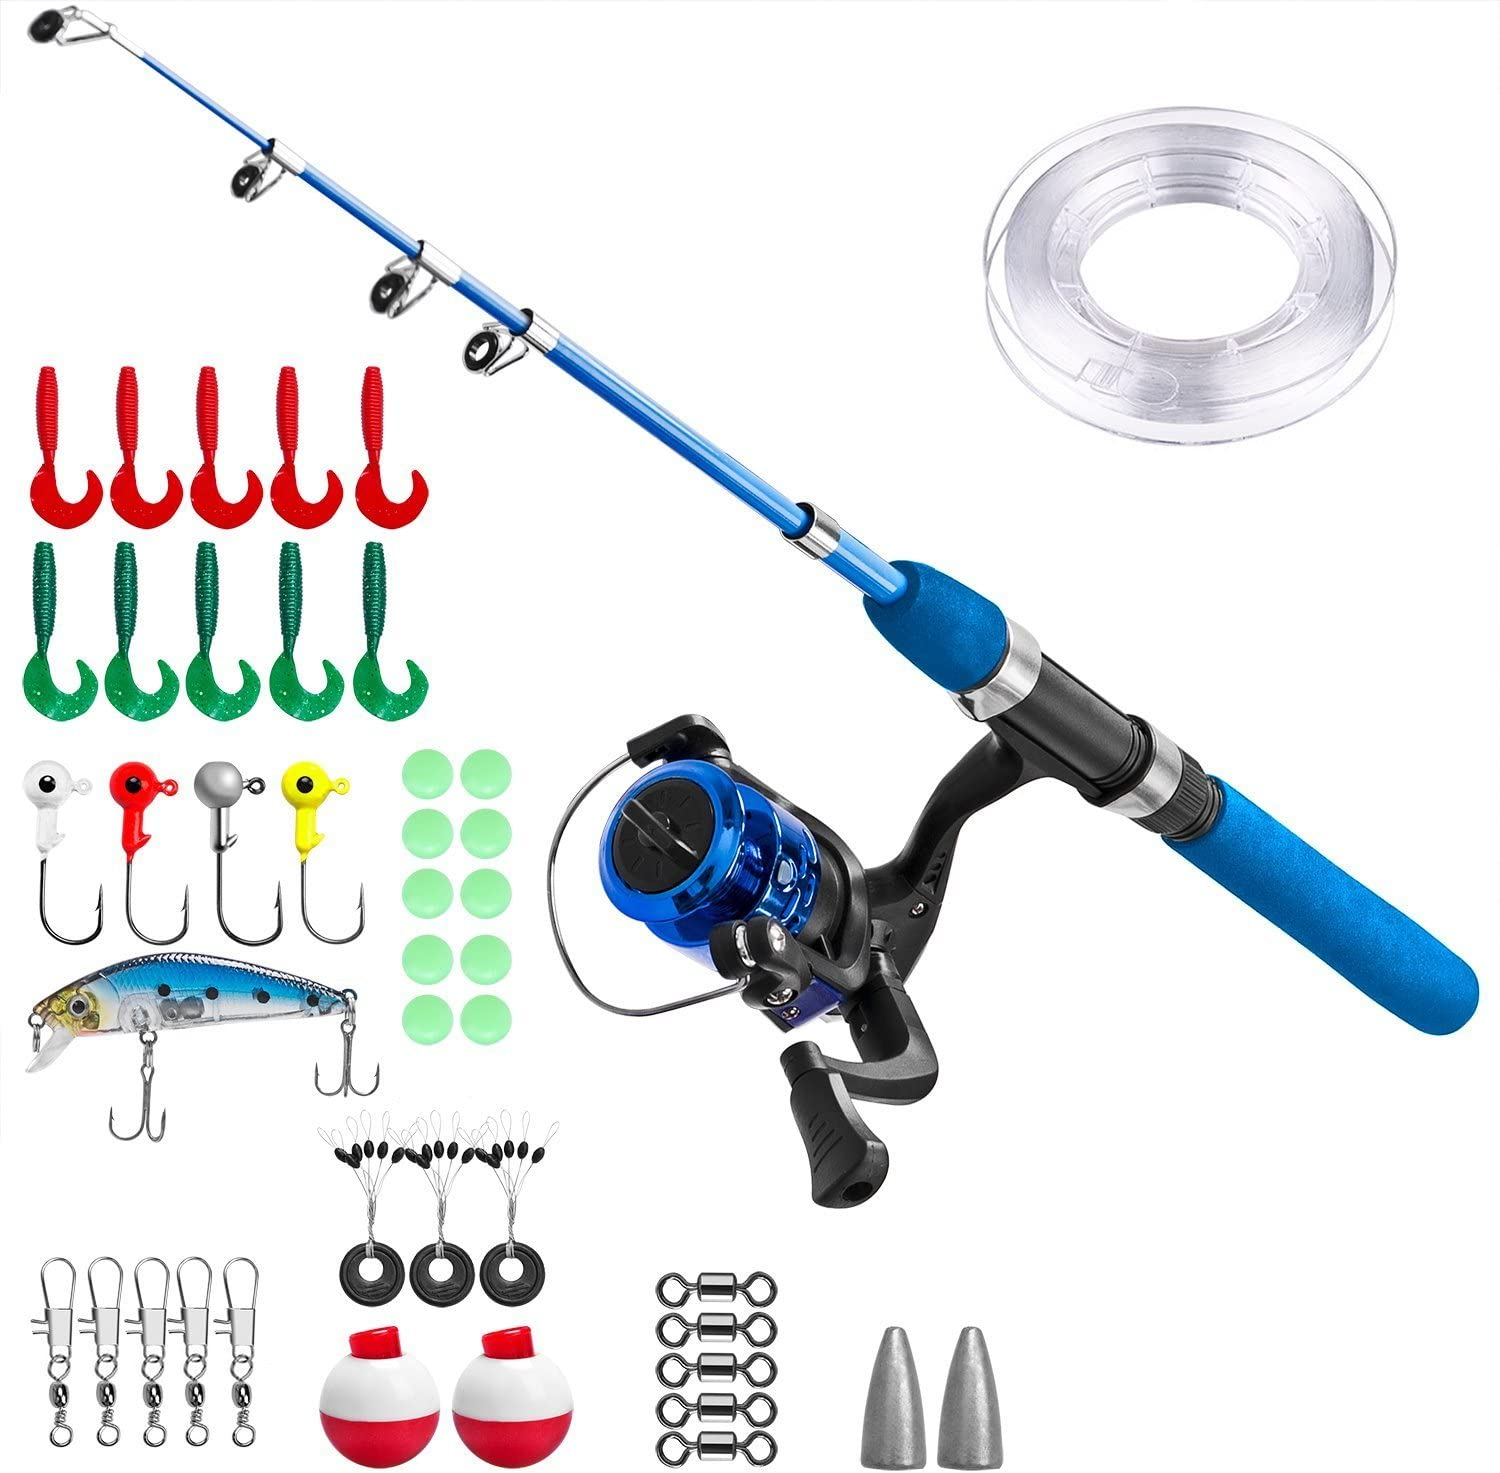 PLUSINNO Kids Fishing Pole,Light and Portable Telescopic Fishing Rod and Reel Combos for Youth Fishing (1.2, Blue Handle)